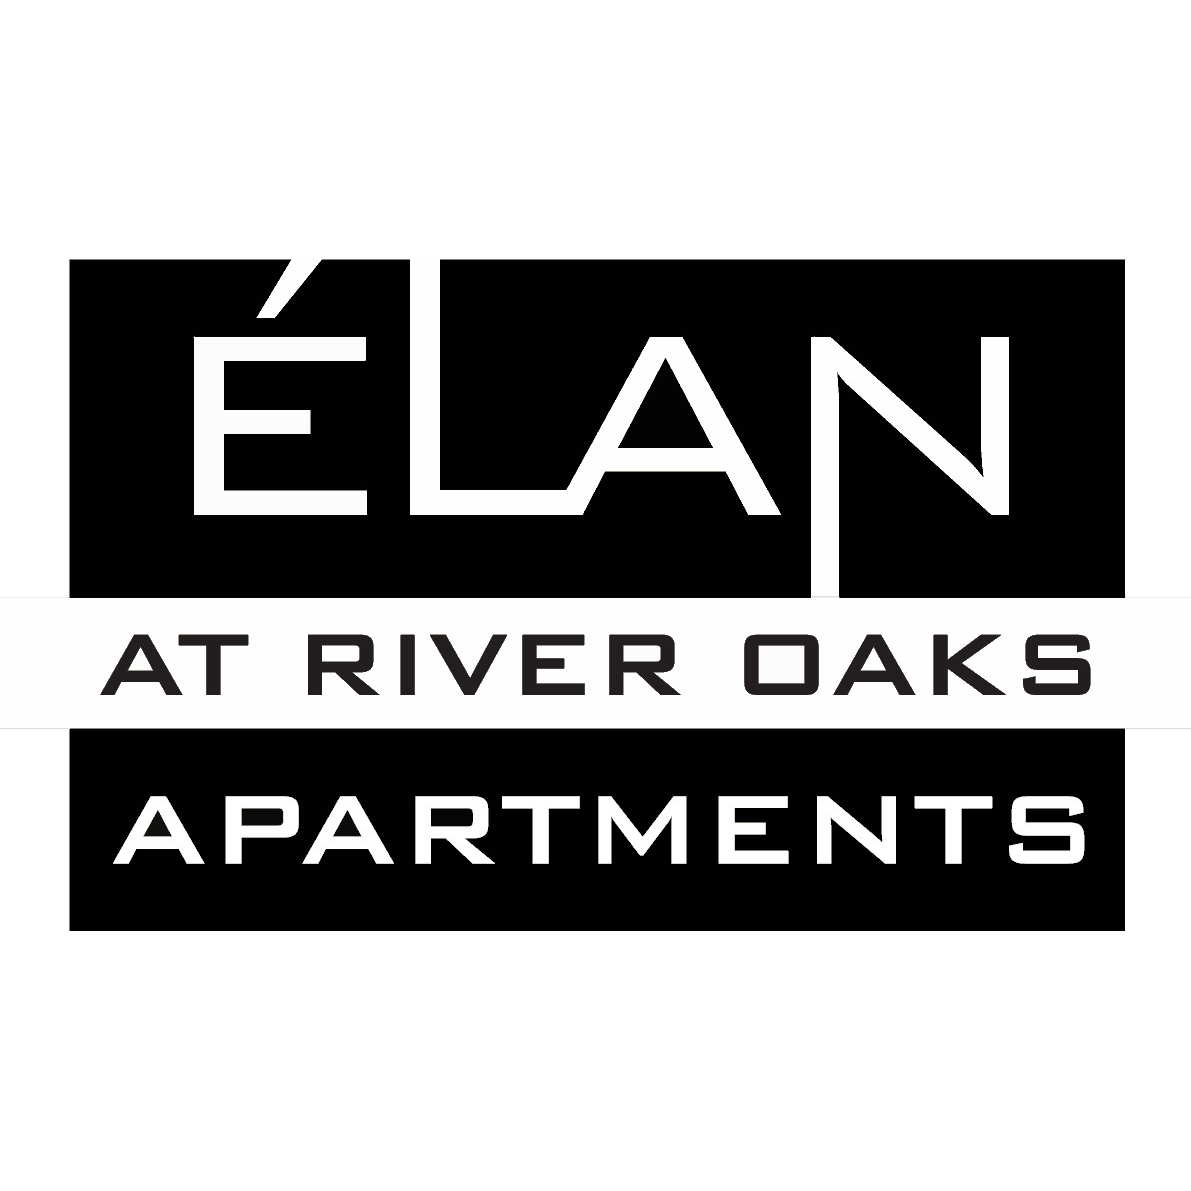 Elan at River Oaks Apartments